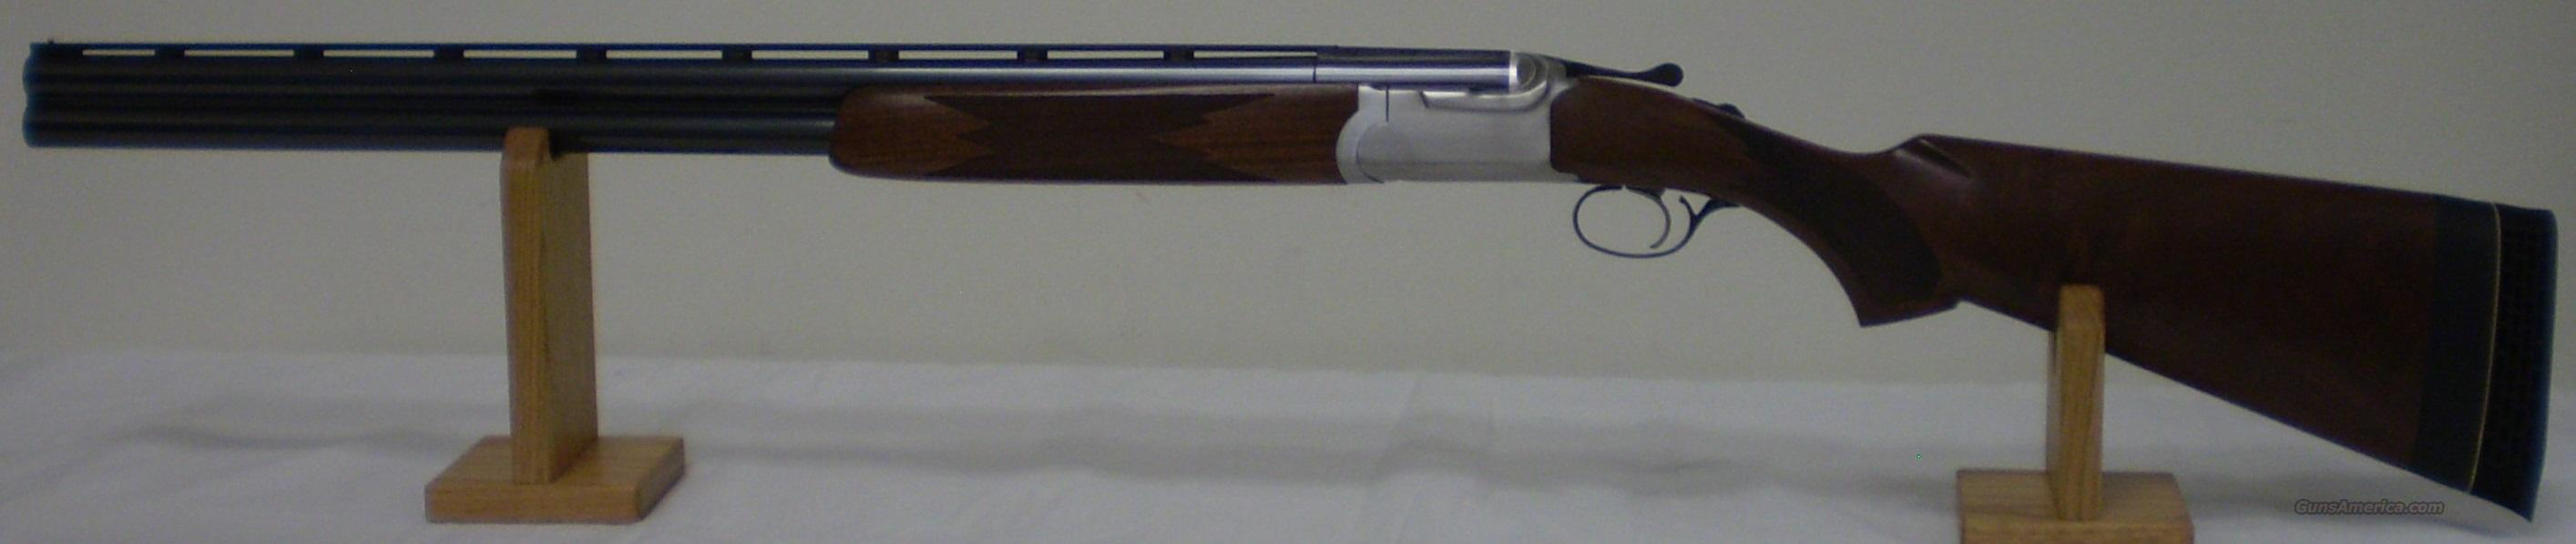 "Ruger Red Label (1998 Made) 12GA O/U ""Darn Pretty Wood""  Guns > Shotguns > Ruger Shotguns > Hunting"